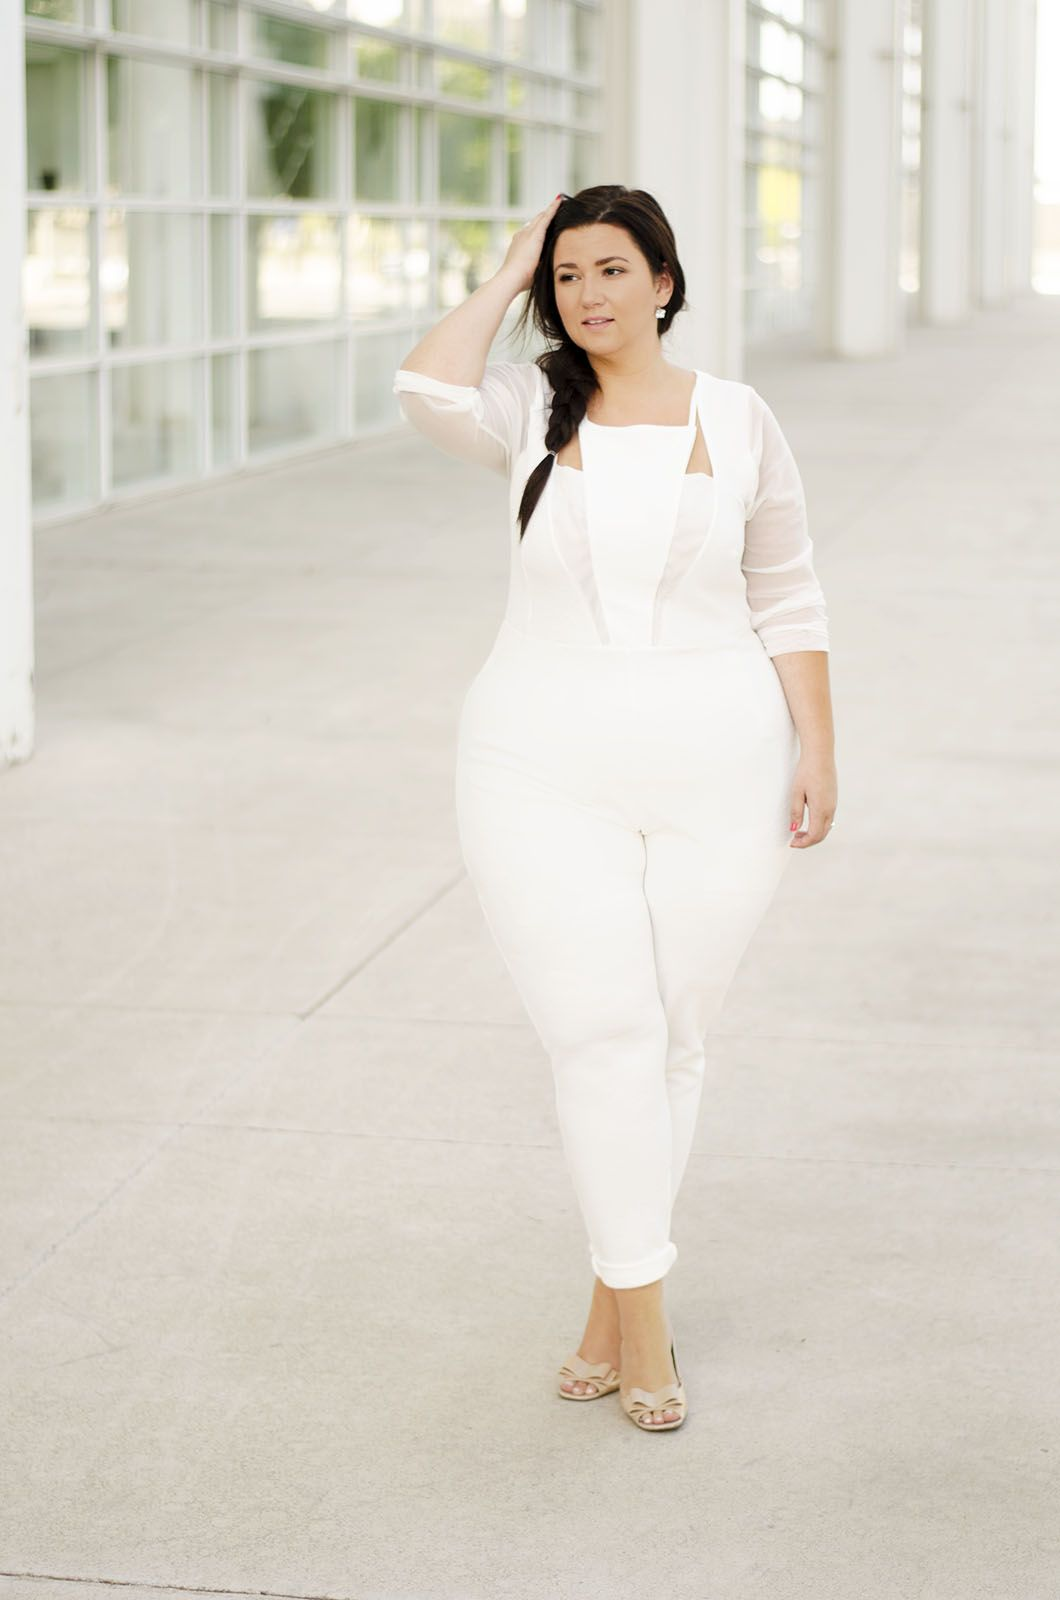 ee28ac0e3a8 plus size jumpsuit white jumpsuit plus size bride plus size wedding crystal  coons sometimes glam